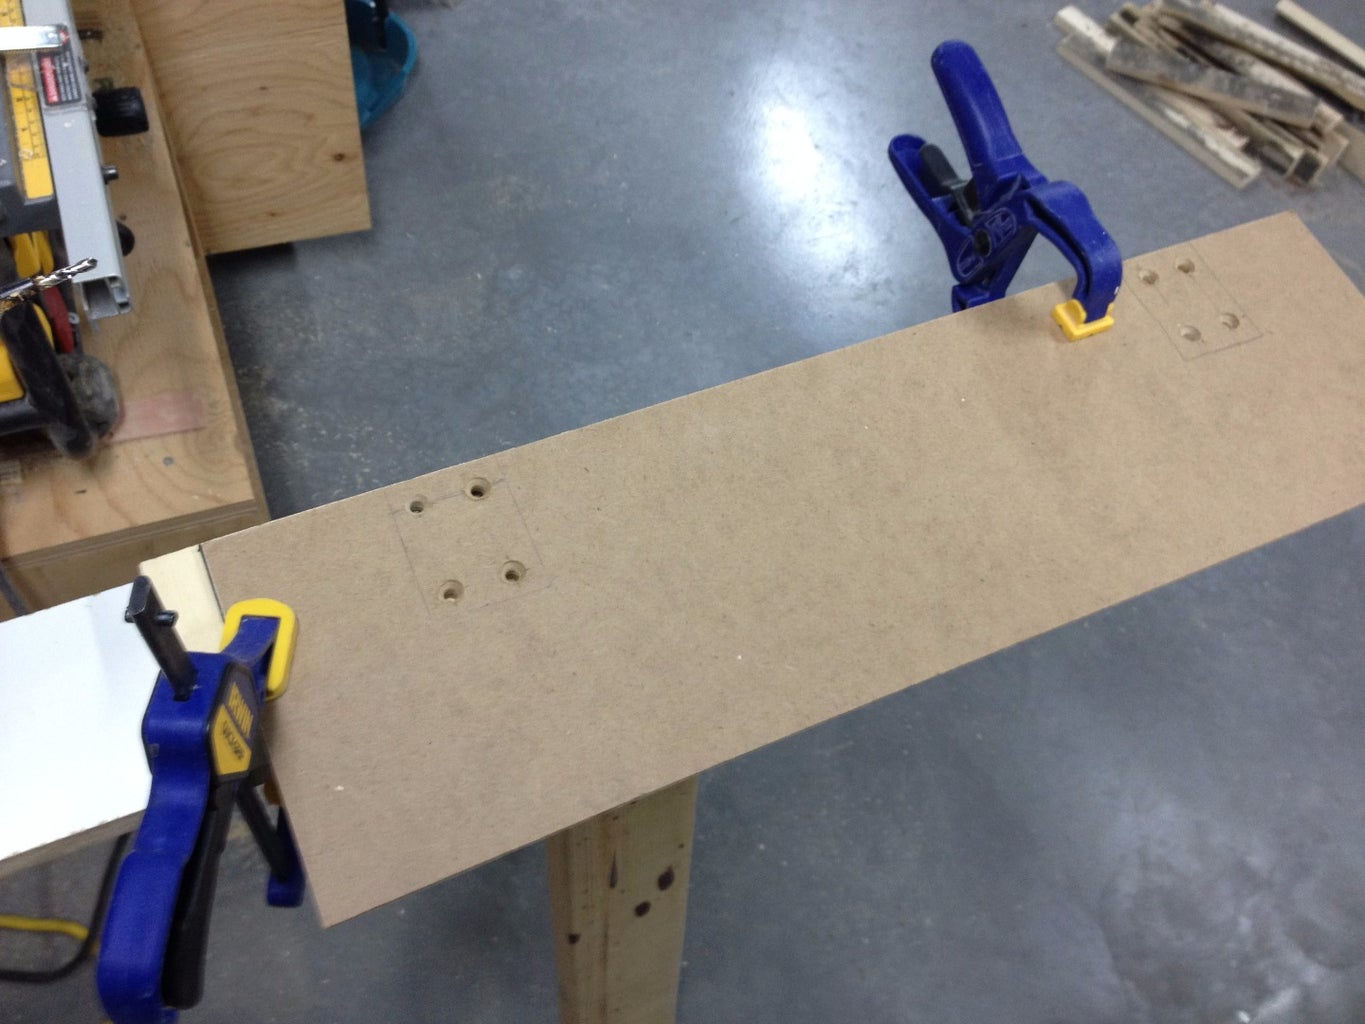 Glue the Plywood Together & Screw the Blocks On